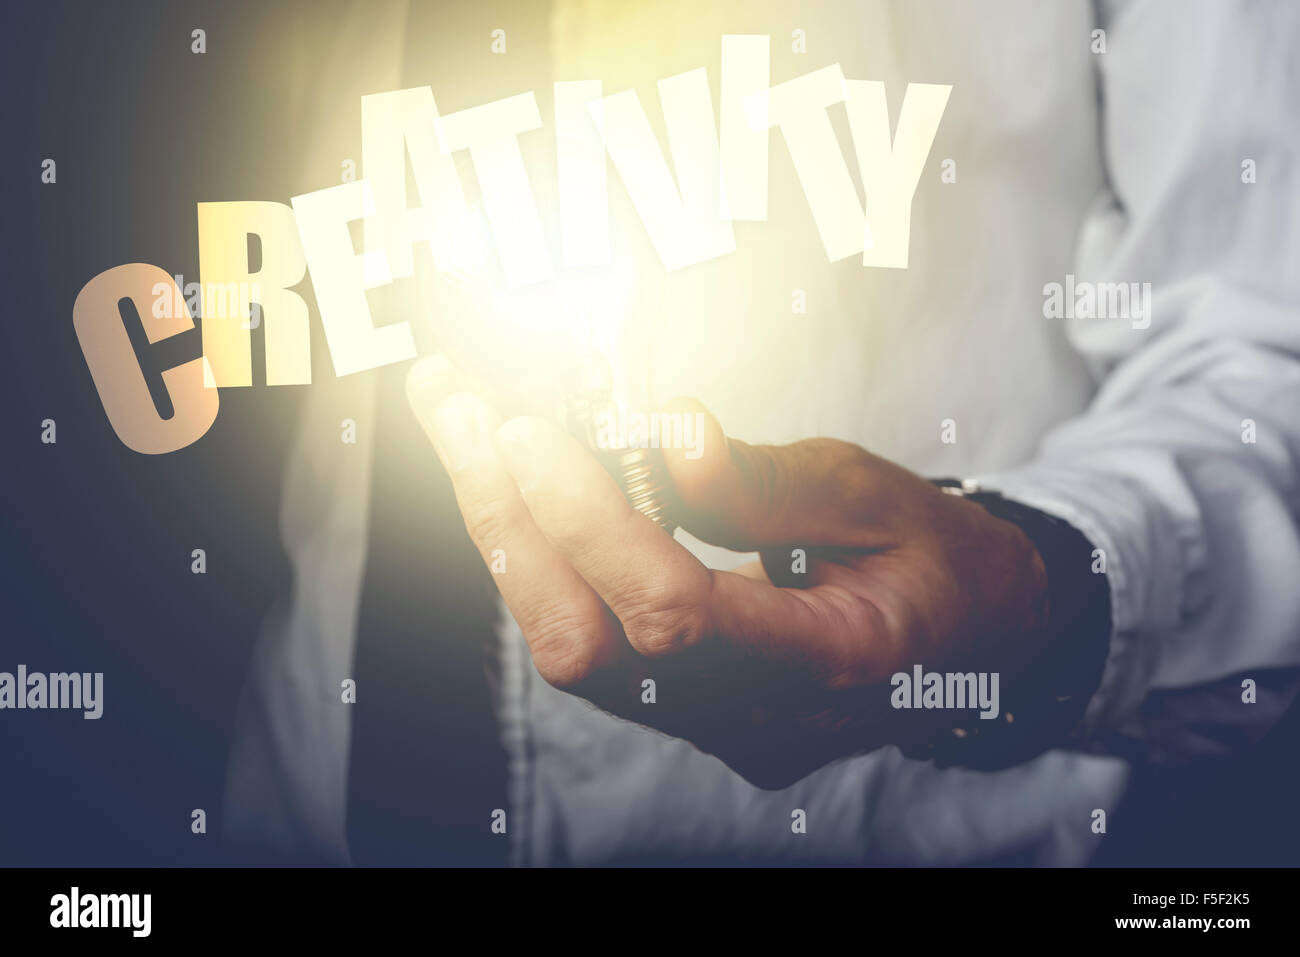 Creativity concept with businessman holding light bulb, retro toned image, selective focus. - Stock Image